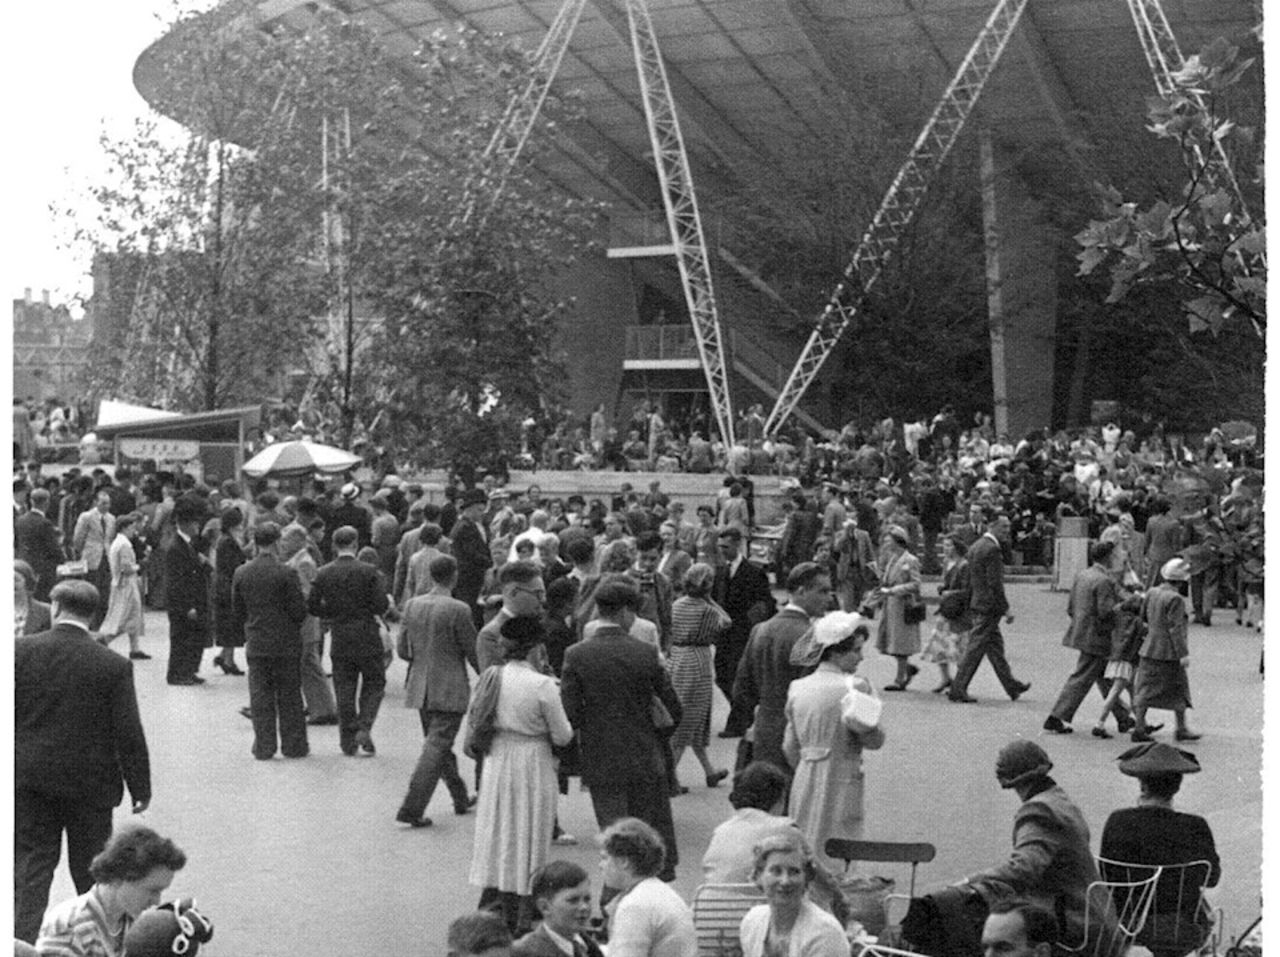 Black and white photo of crowds of people in 1951 gathering next to a large stadium.